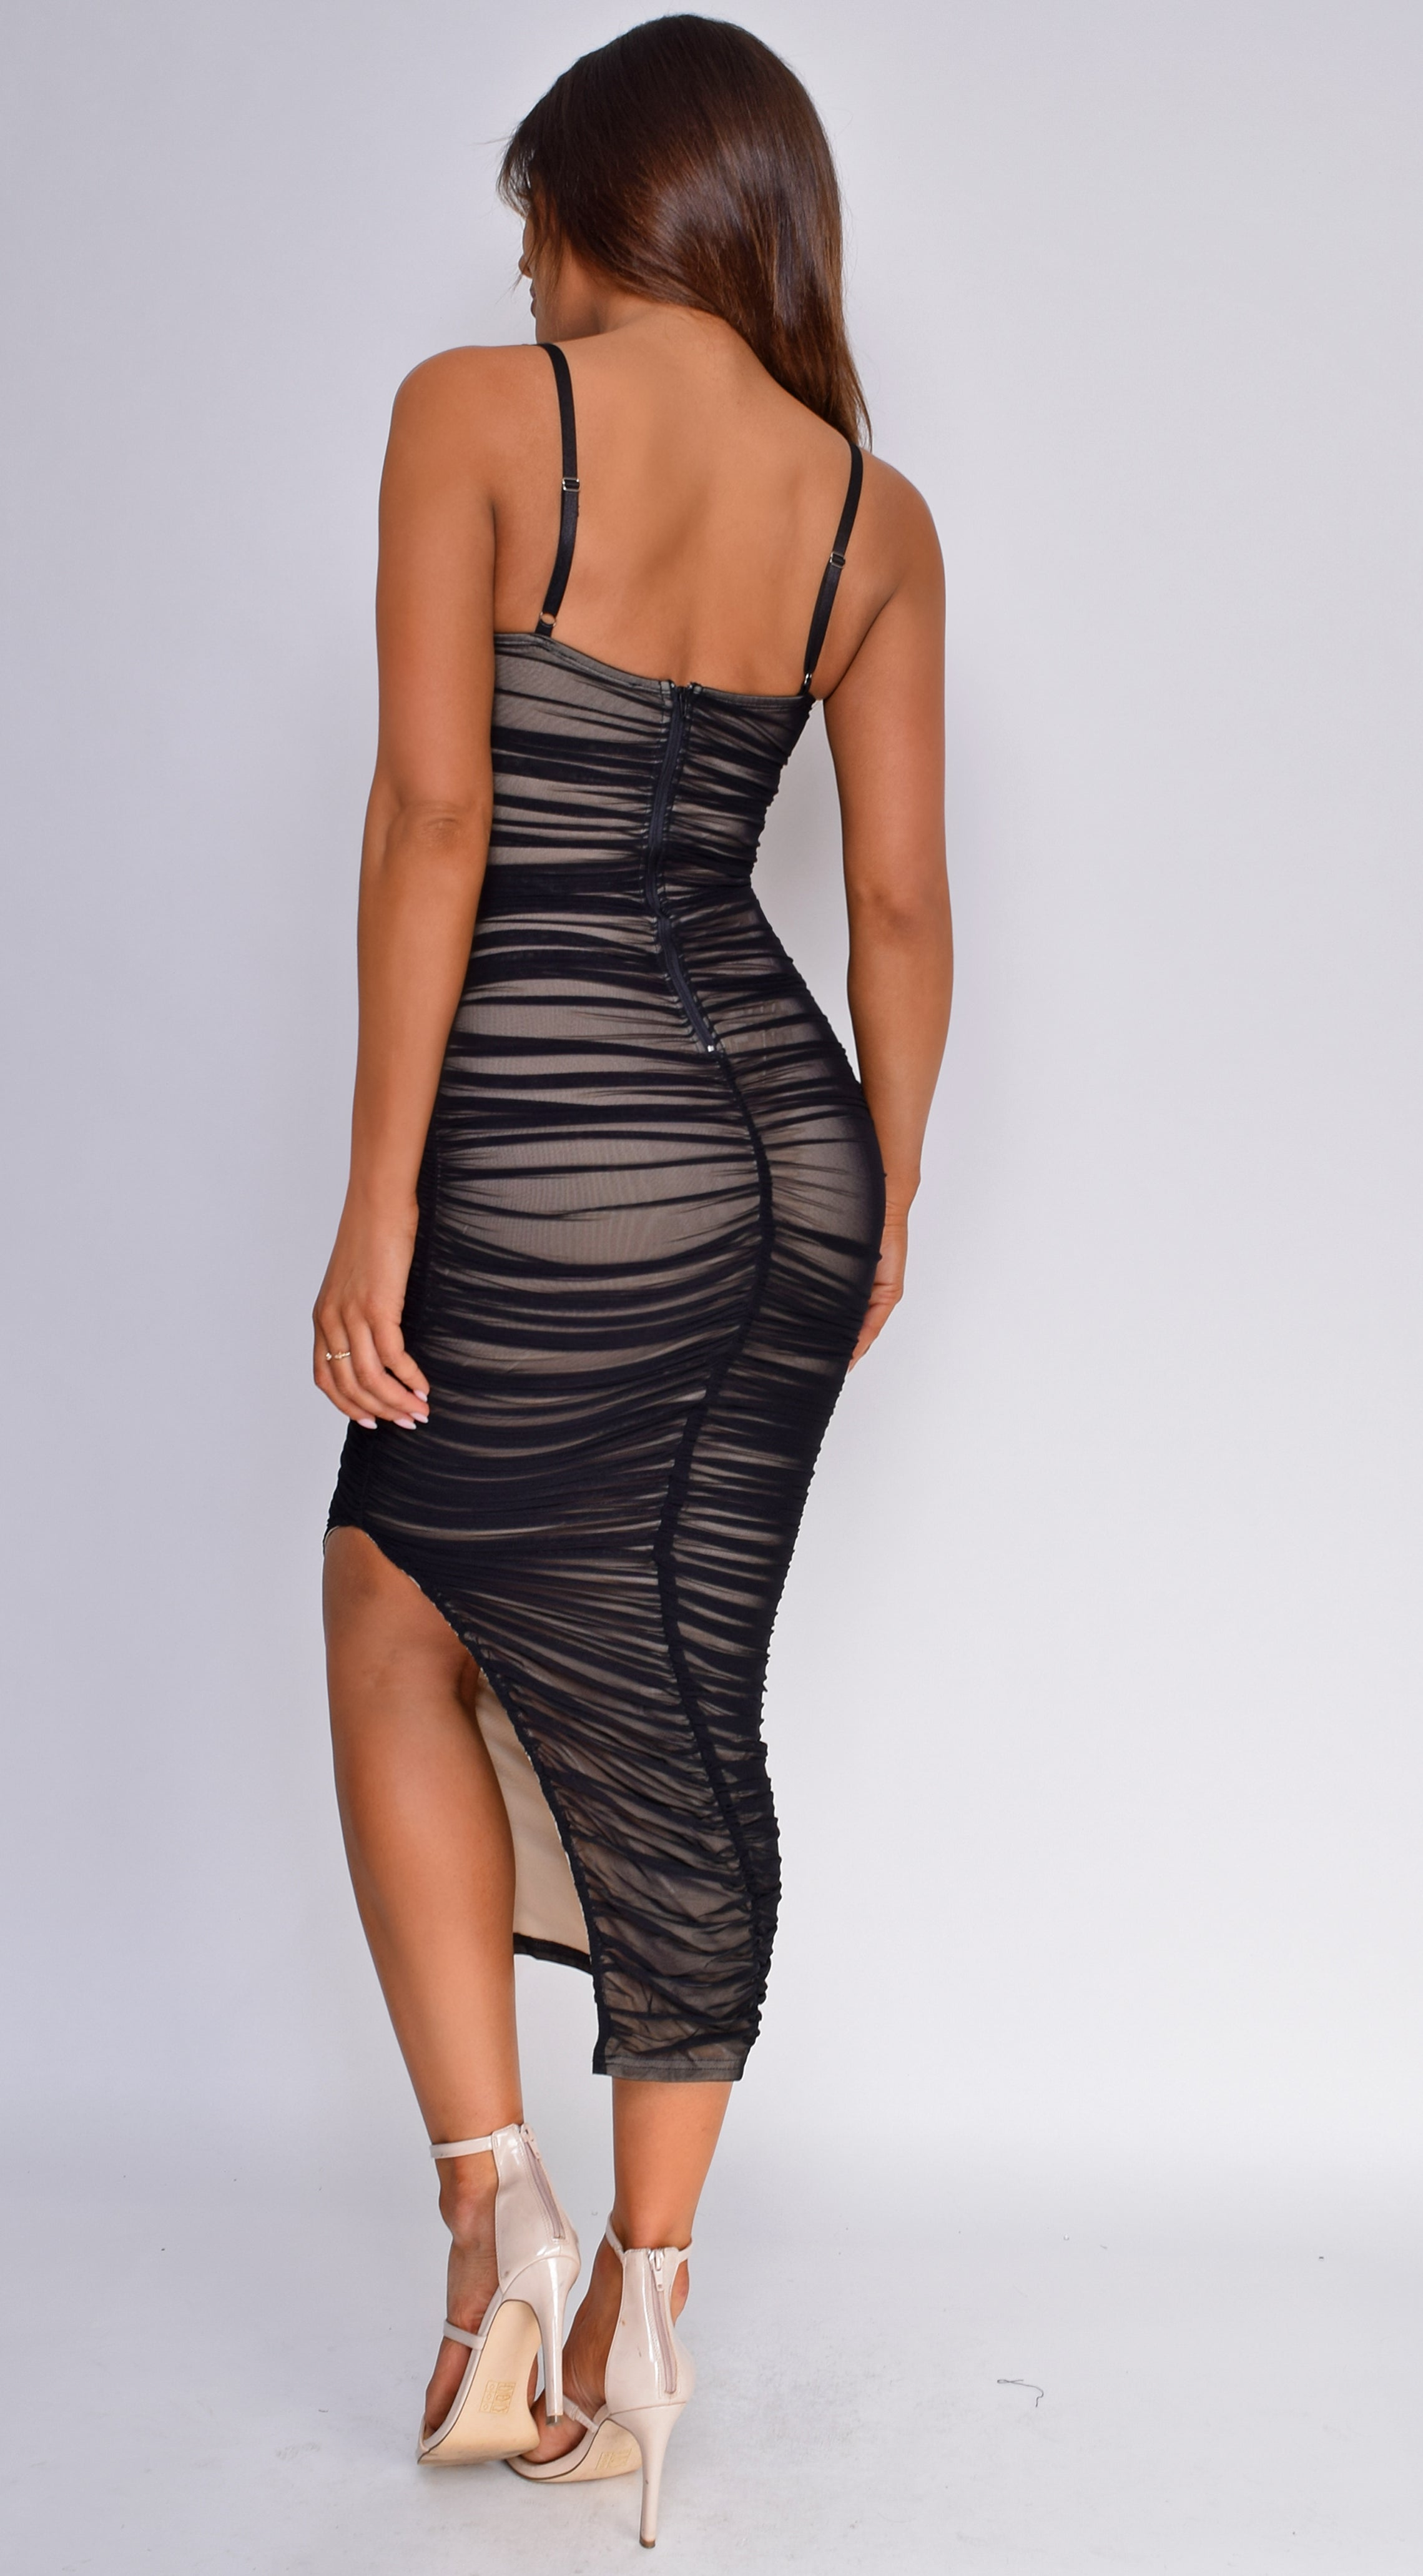 Kana Black Ruched Mesh Slit Dress